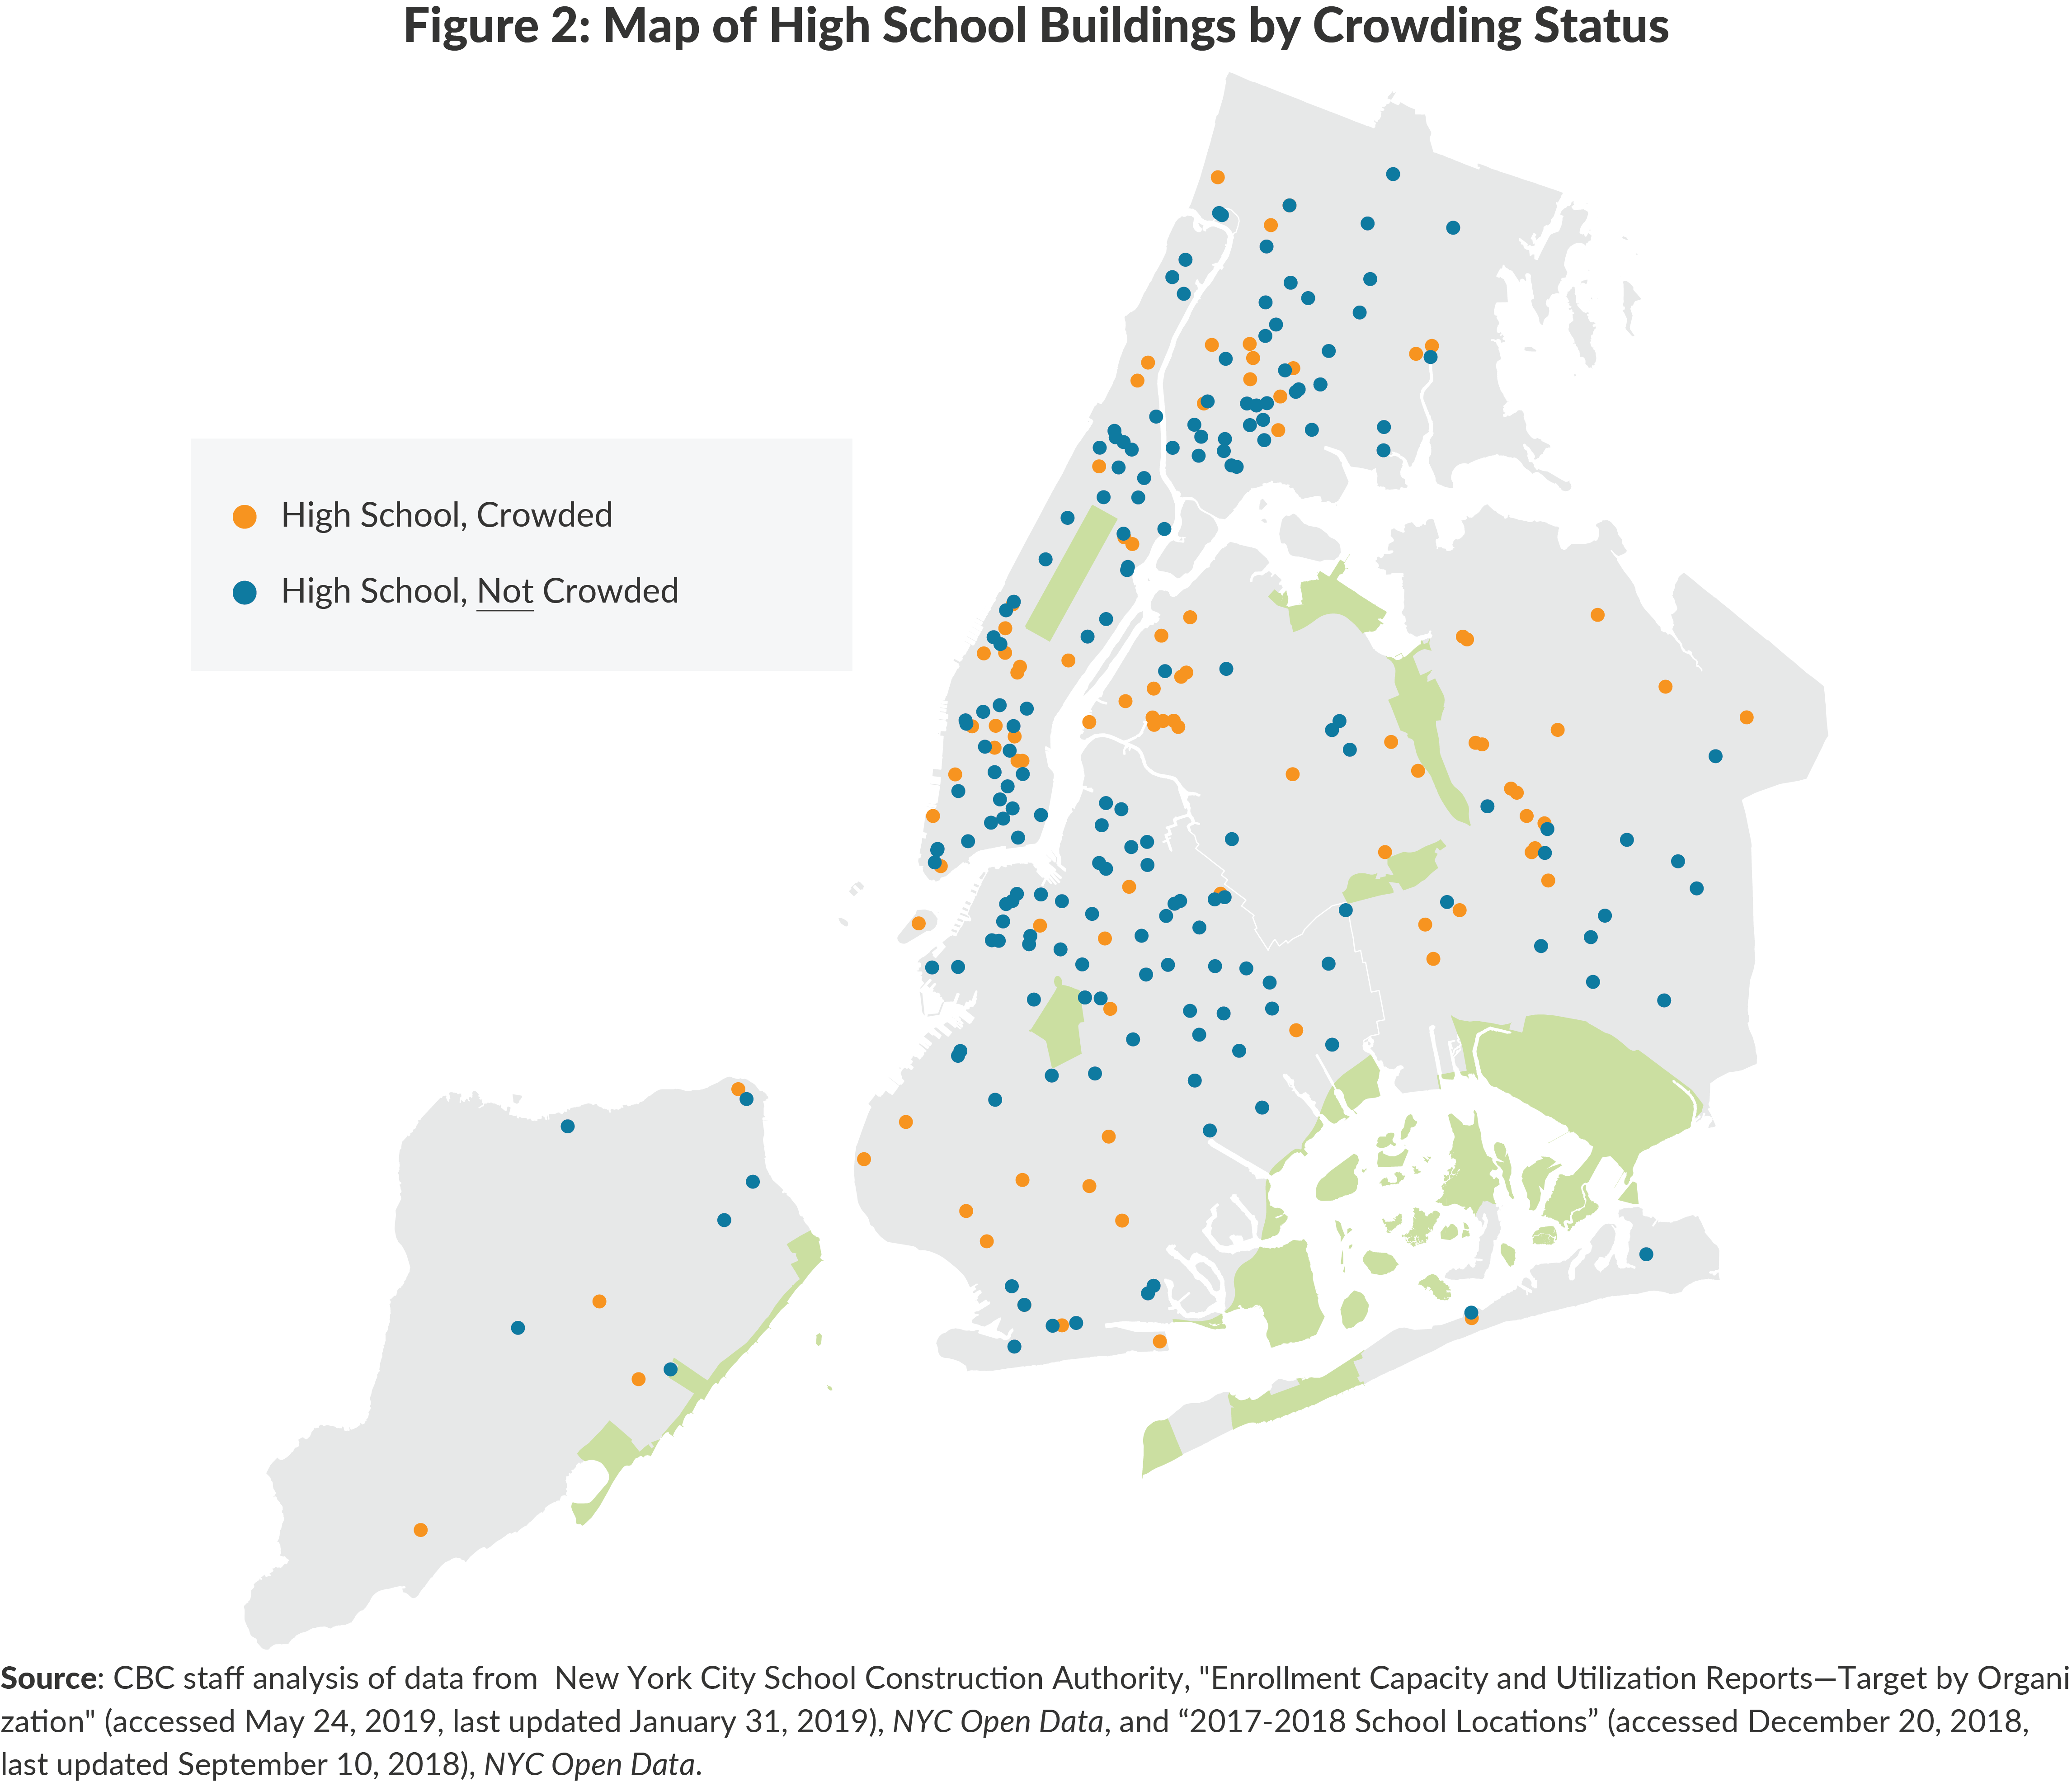 Figure 2: Map of High School Buildings by Crowding Status